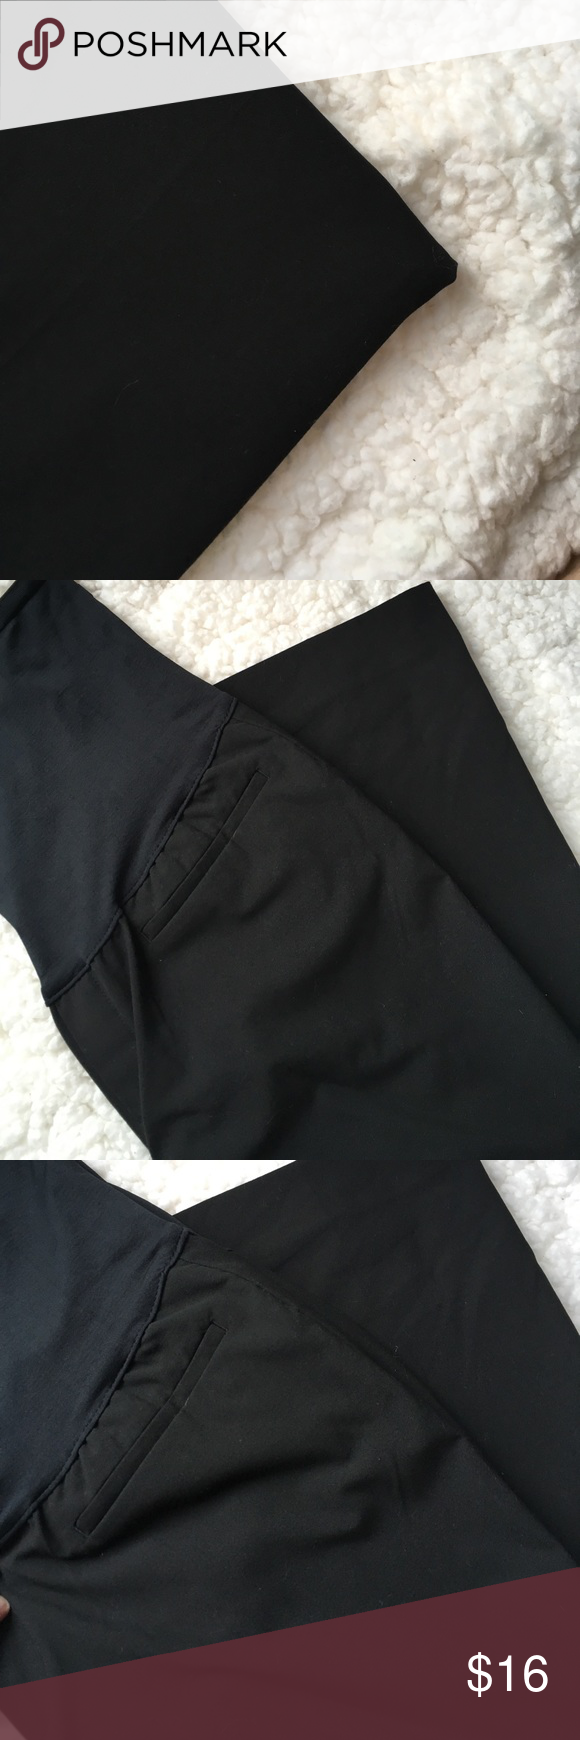 Gap maternity dress work professional pants maternity dresses gap maternity dress work professional pants ombrellifo Gallery